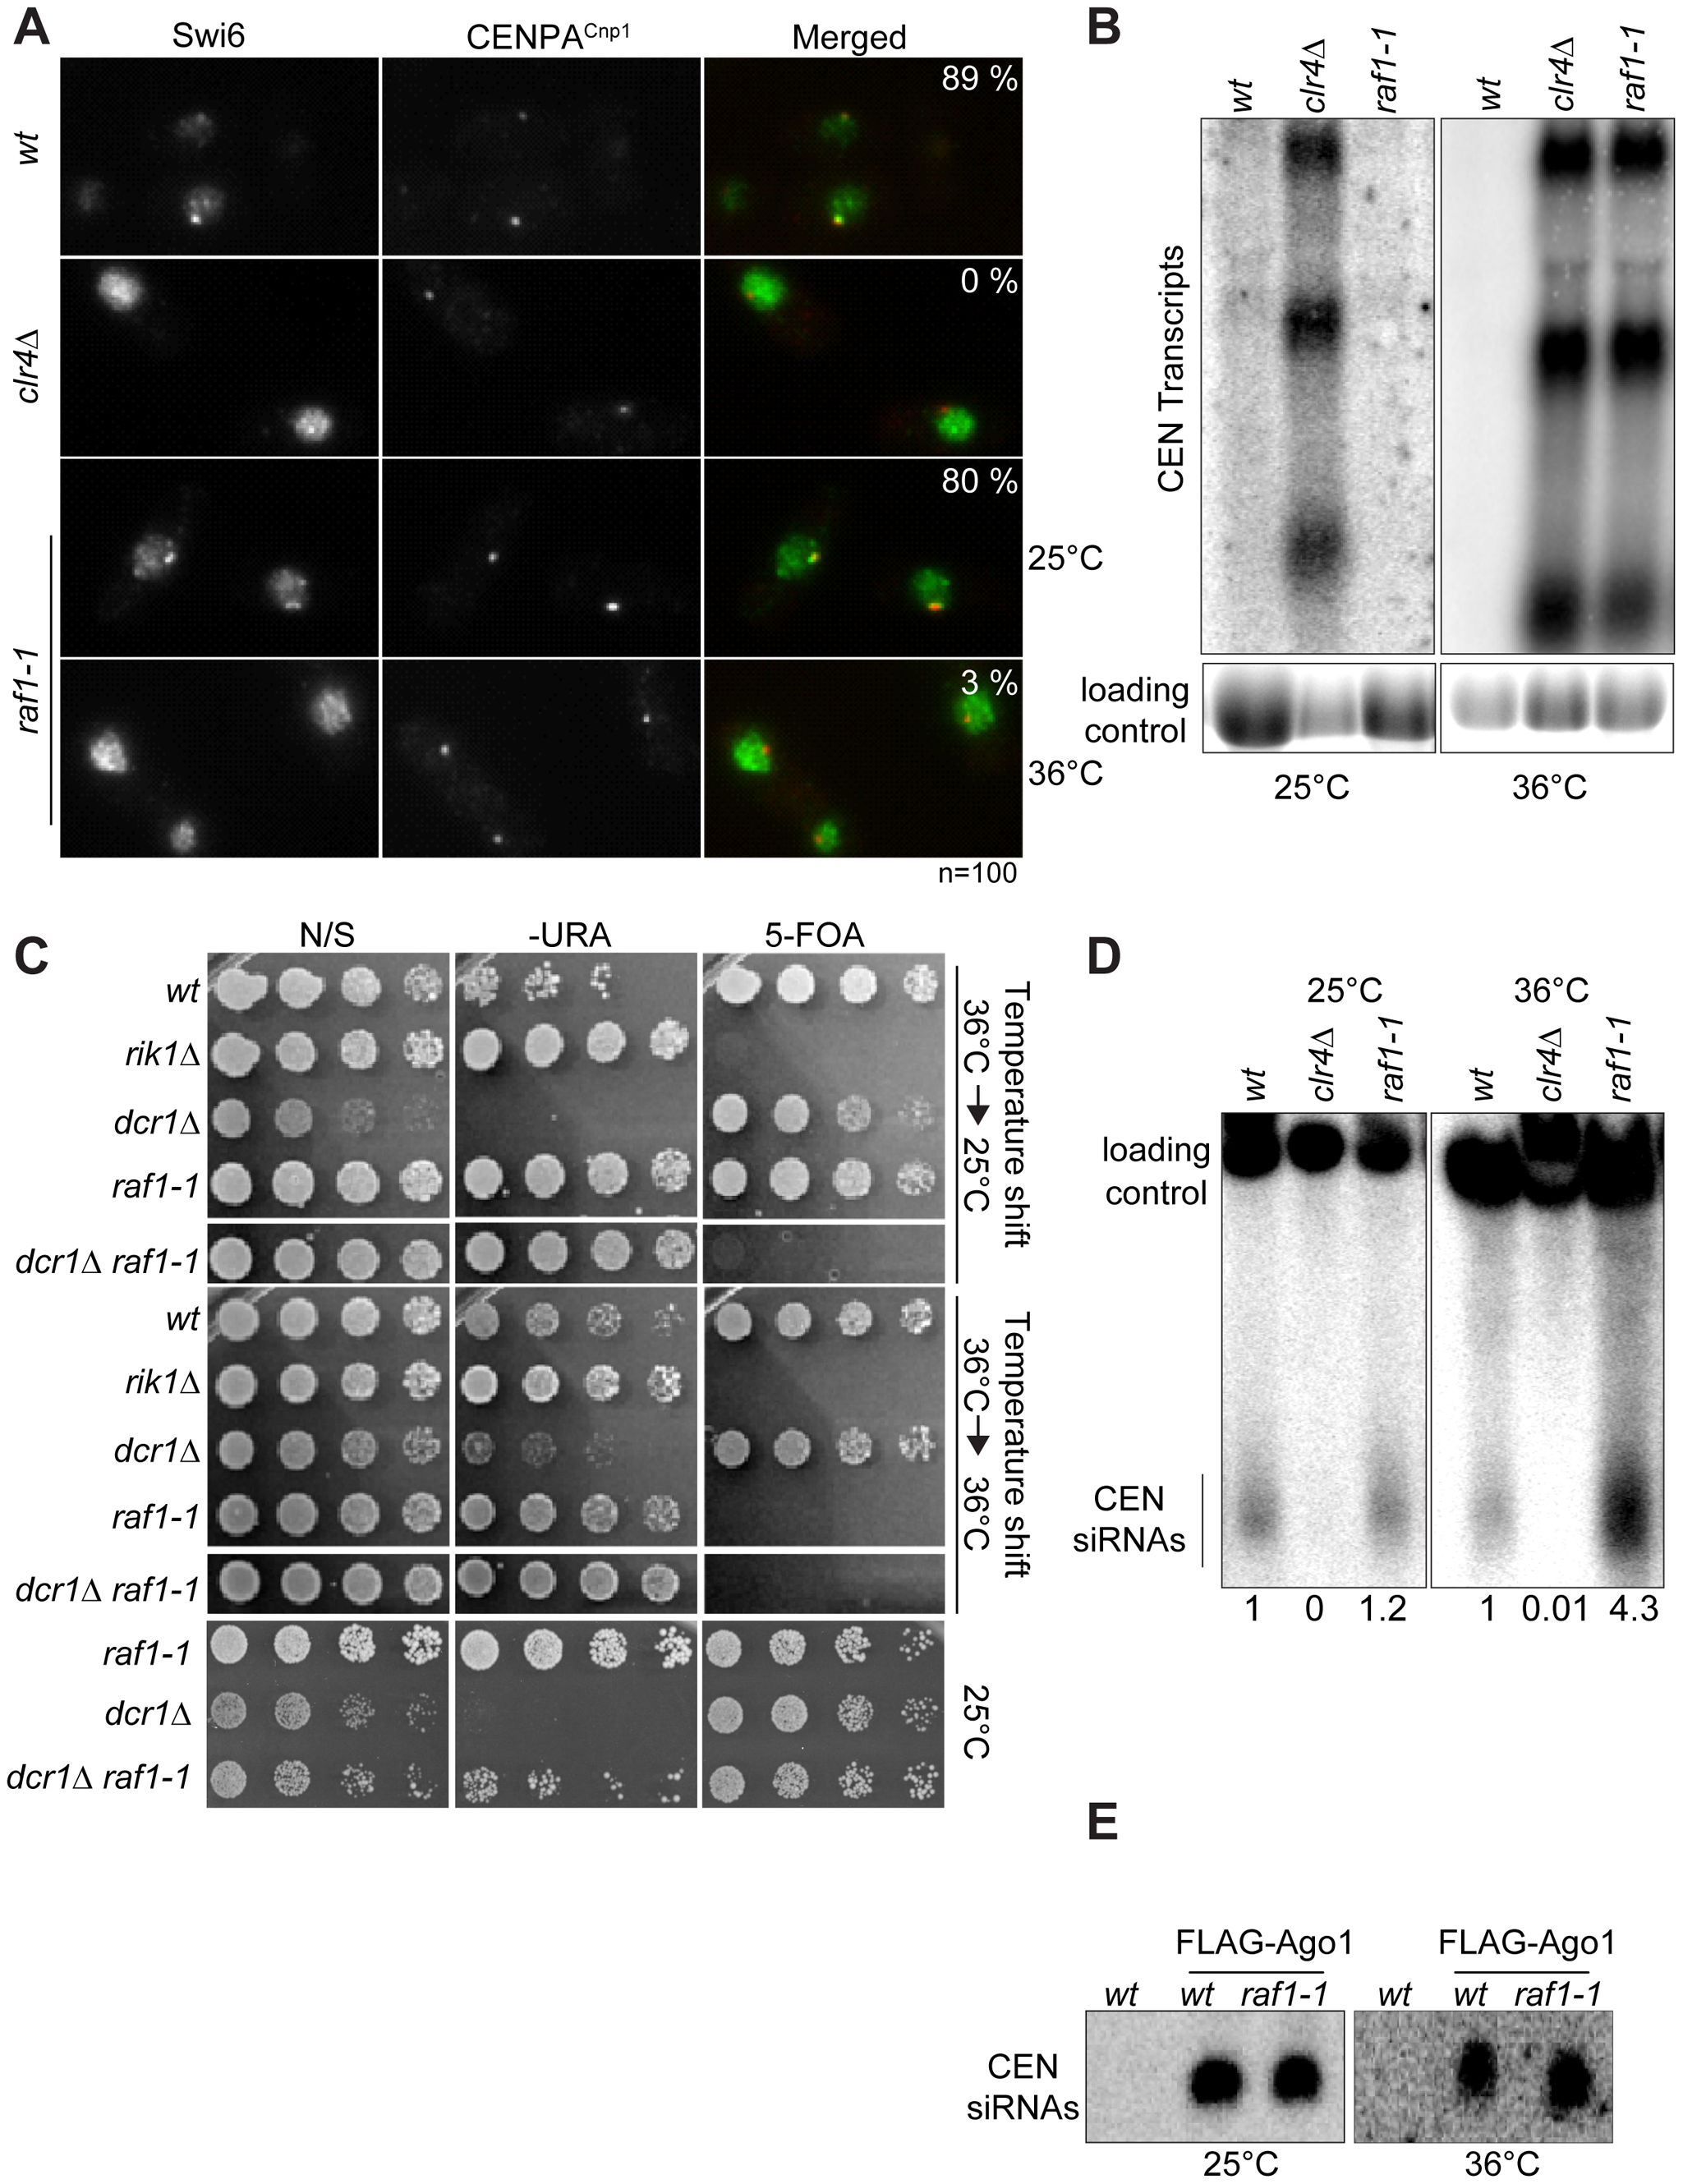 Heterochromatin, but not siRNA production, is erased in <i>raf1-1</i> cells.